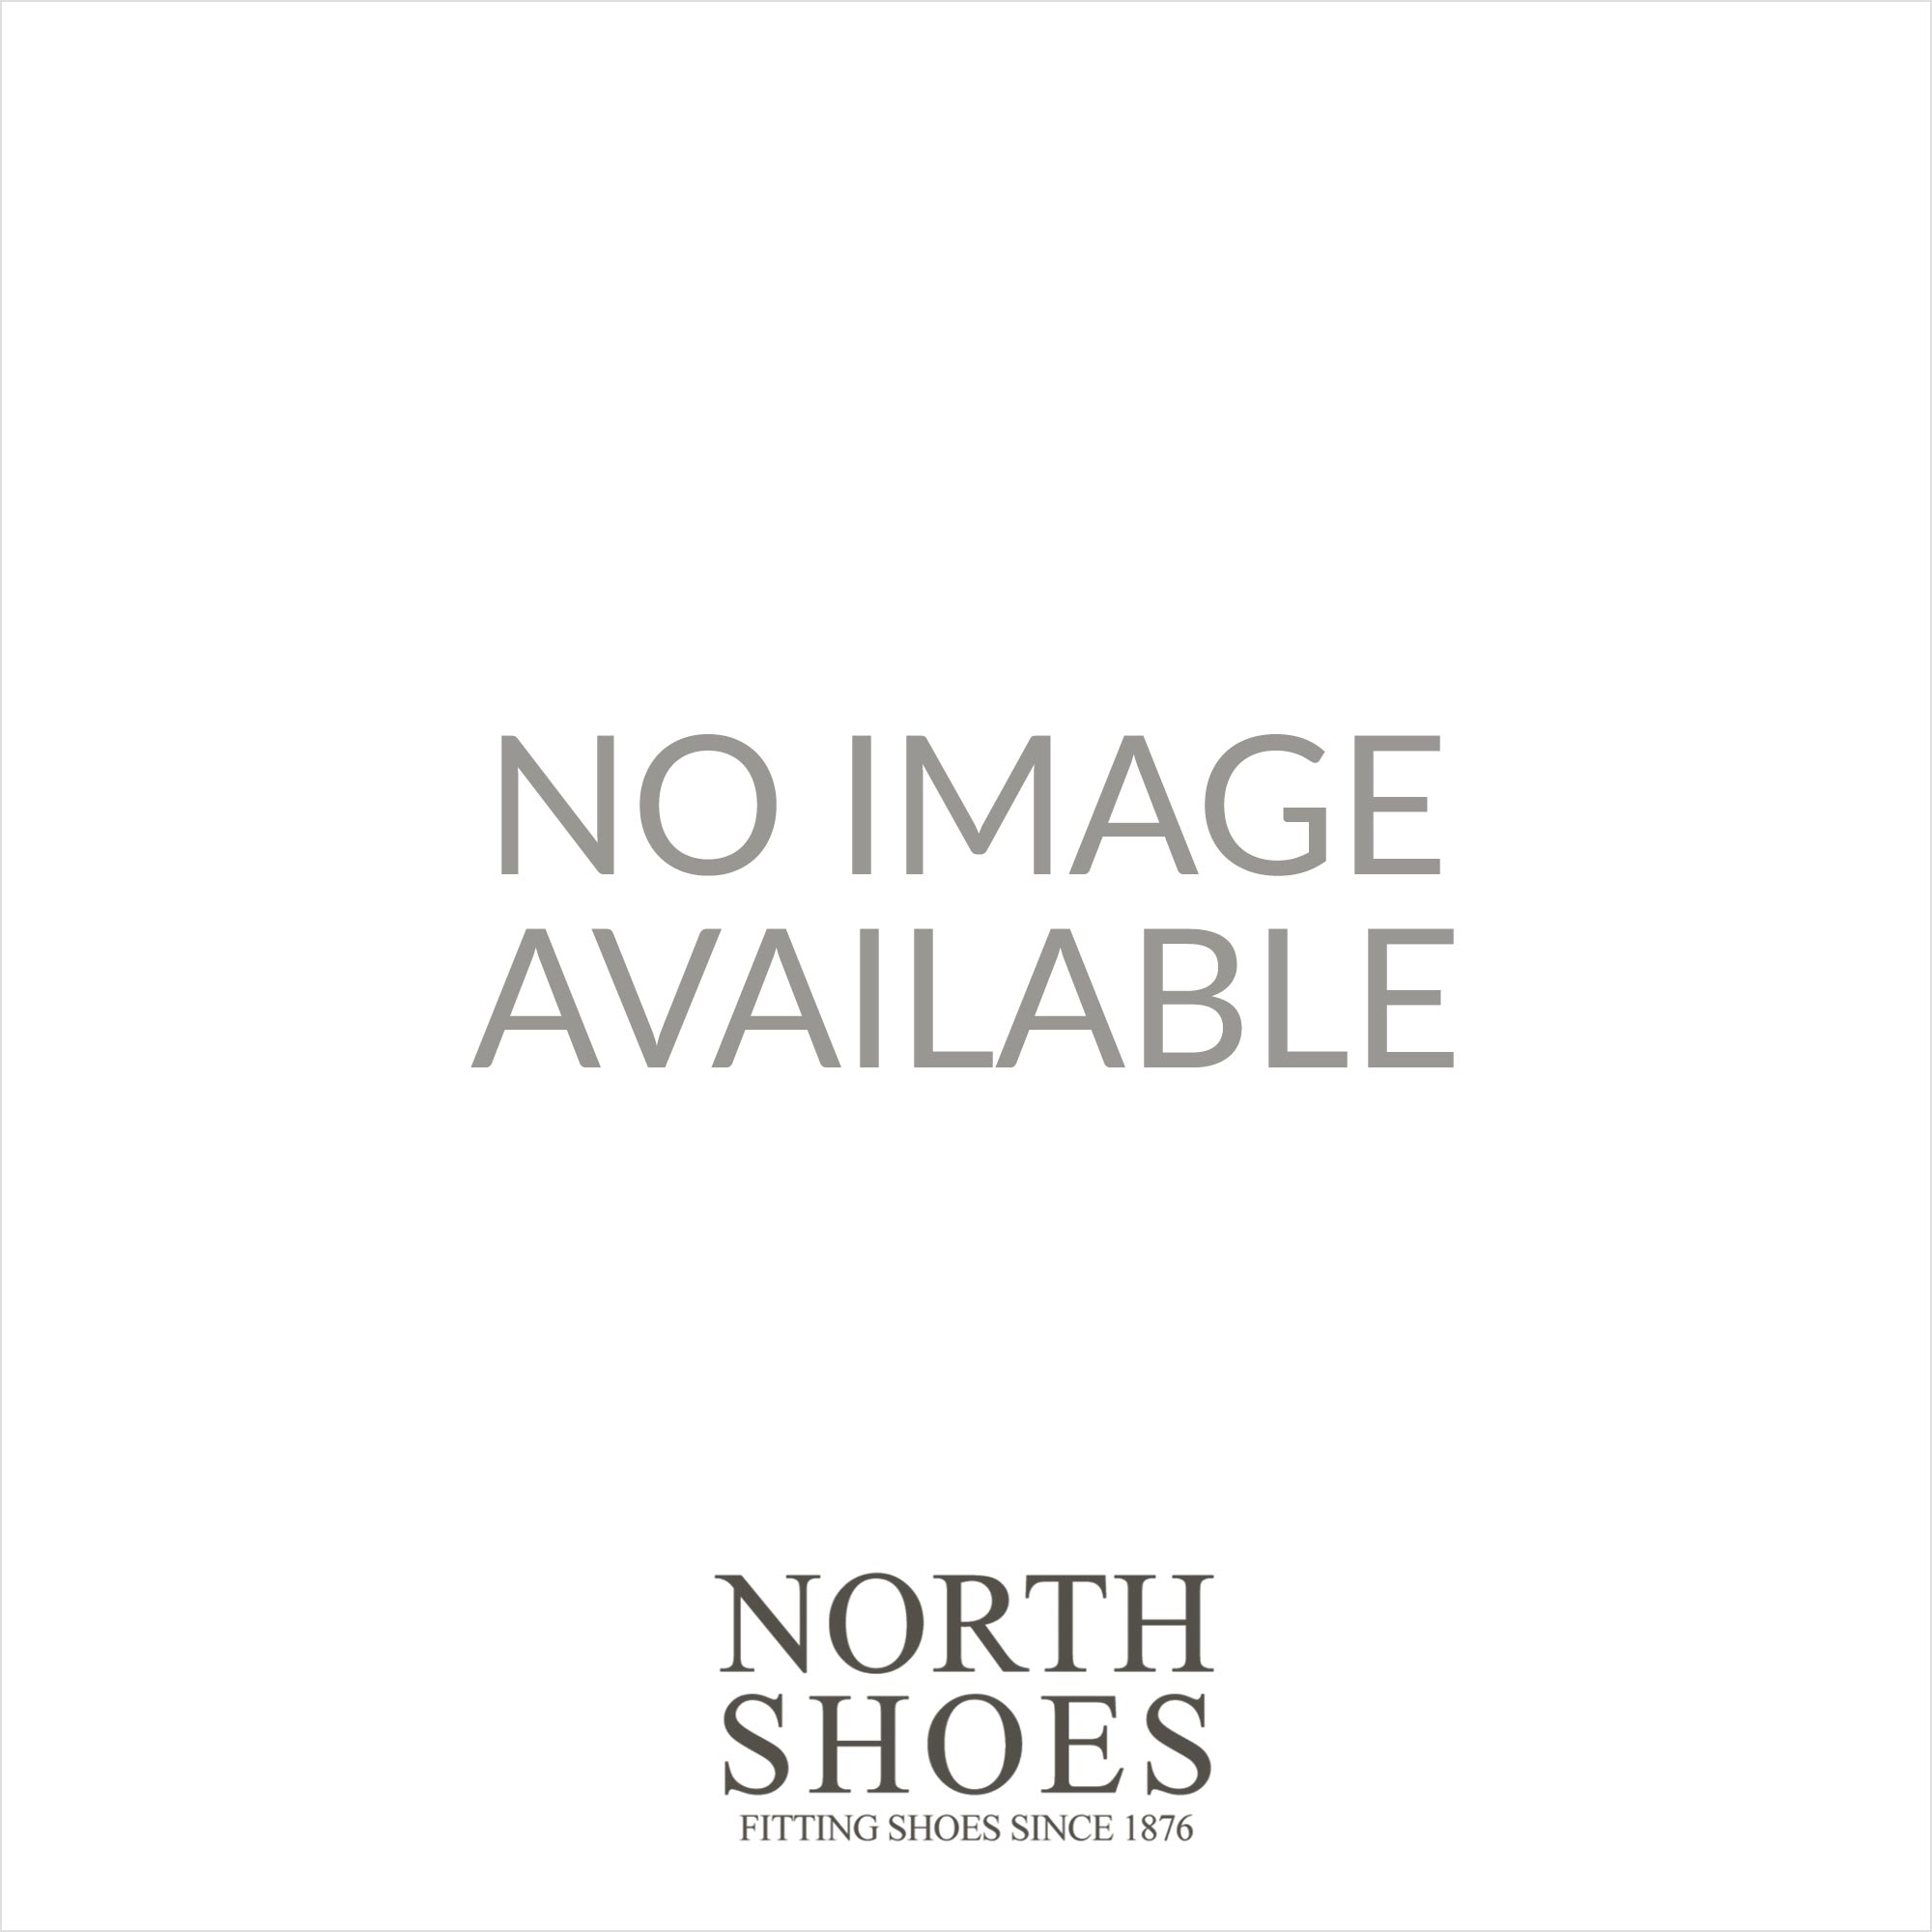 03abb7ac7e79 Clarks Bay Blossom Silver Metallic Leather Womens Buckle Strapy Sandal -  Clarks from North Shoes UK